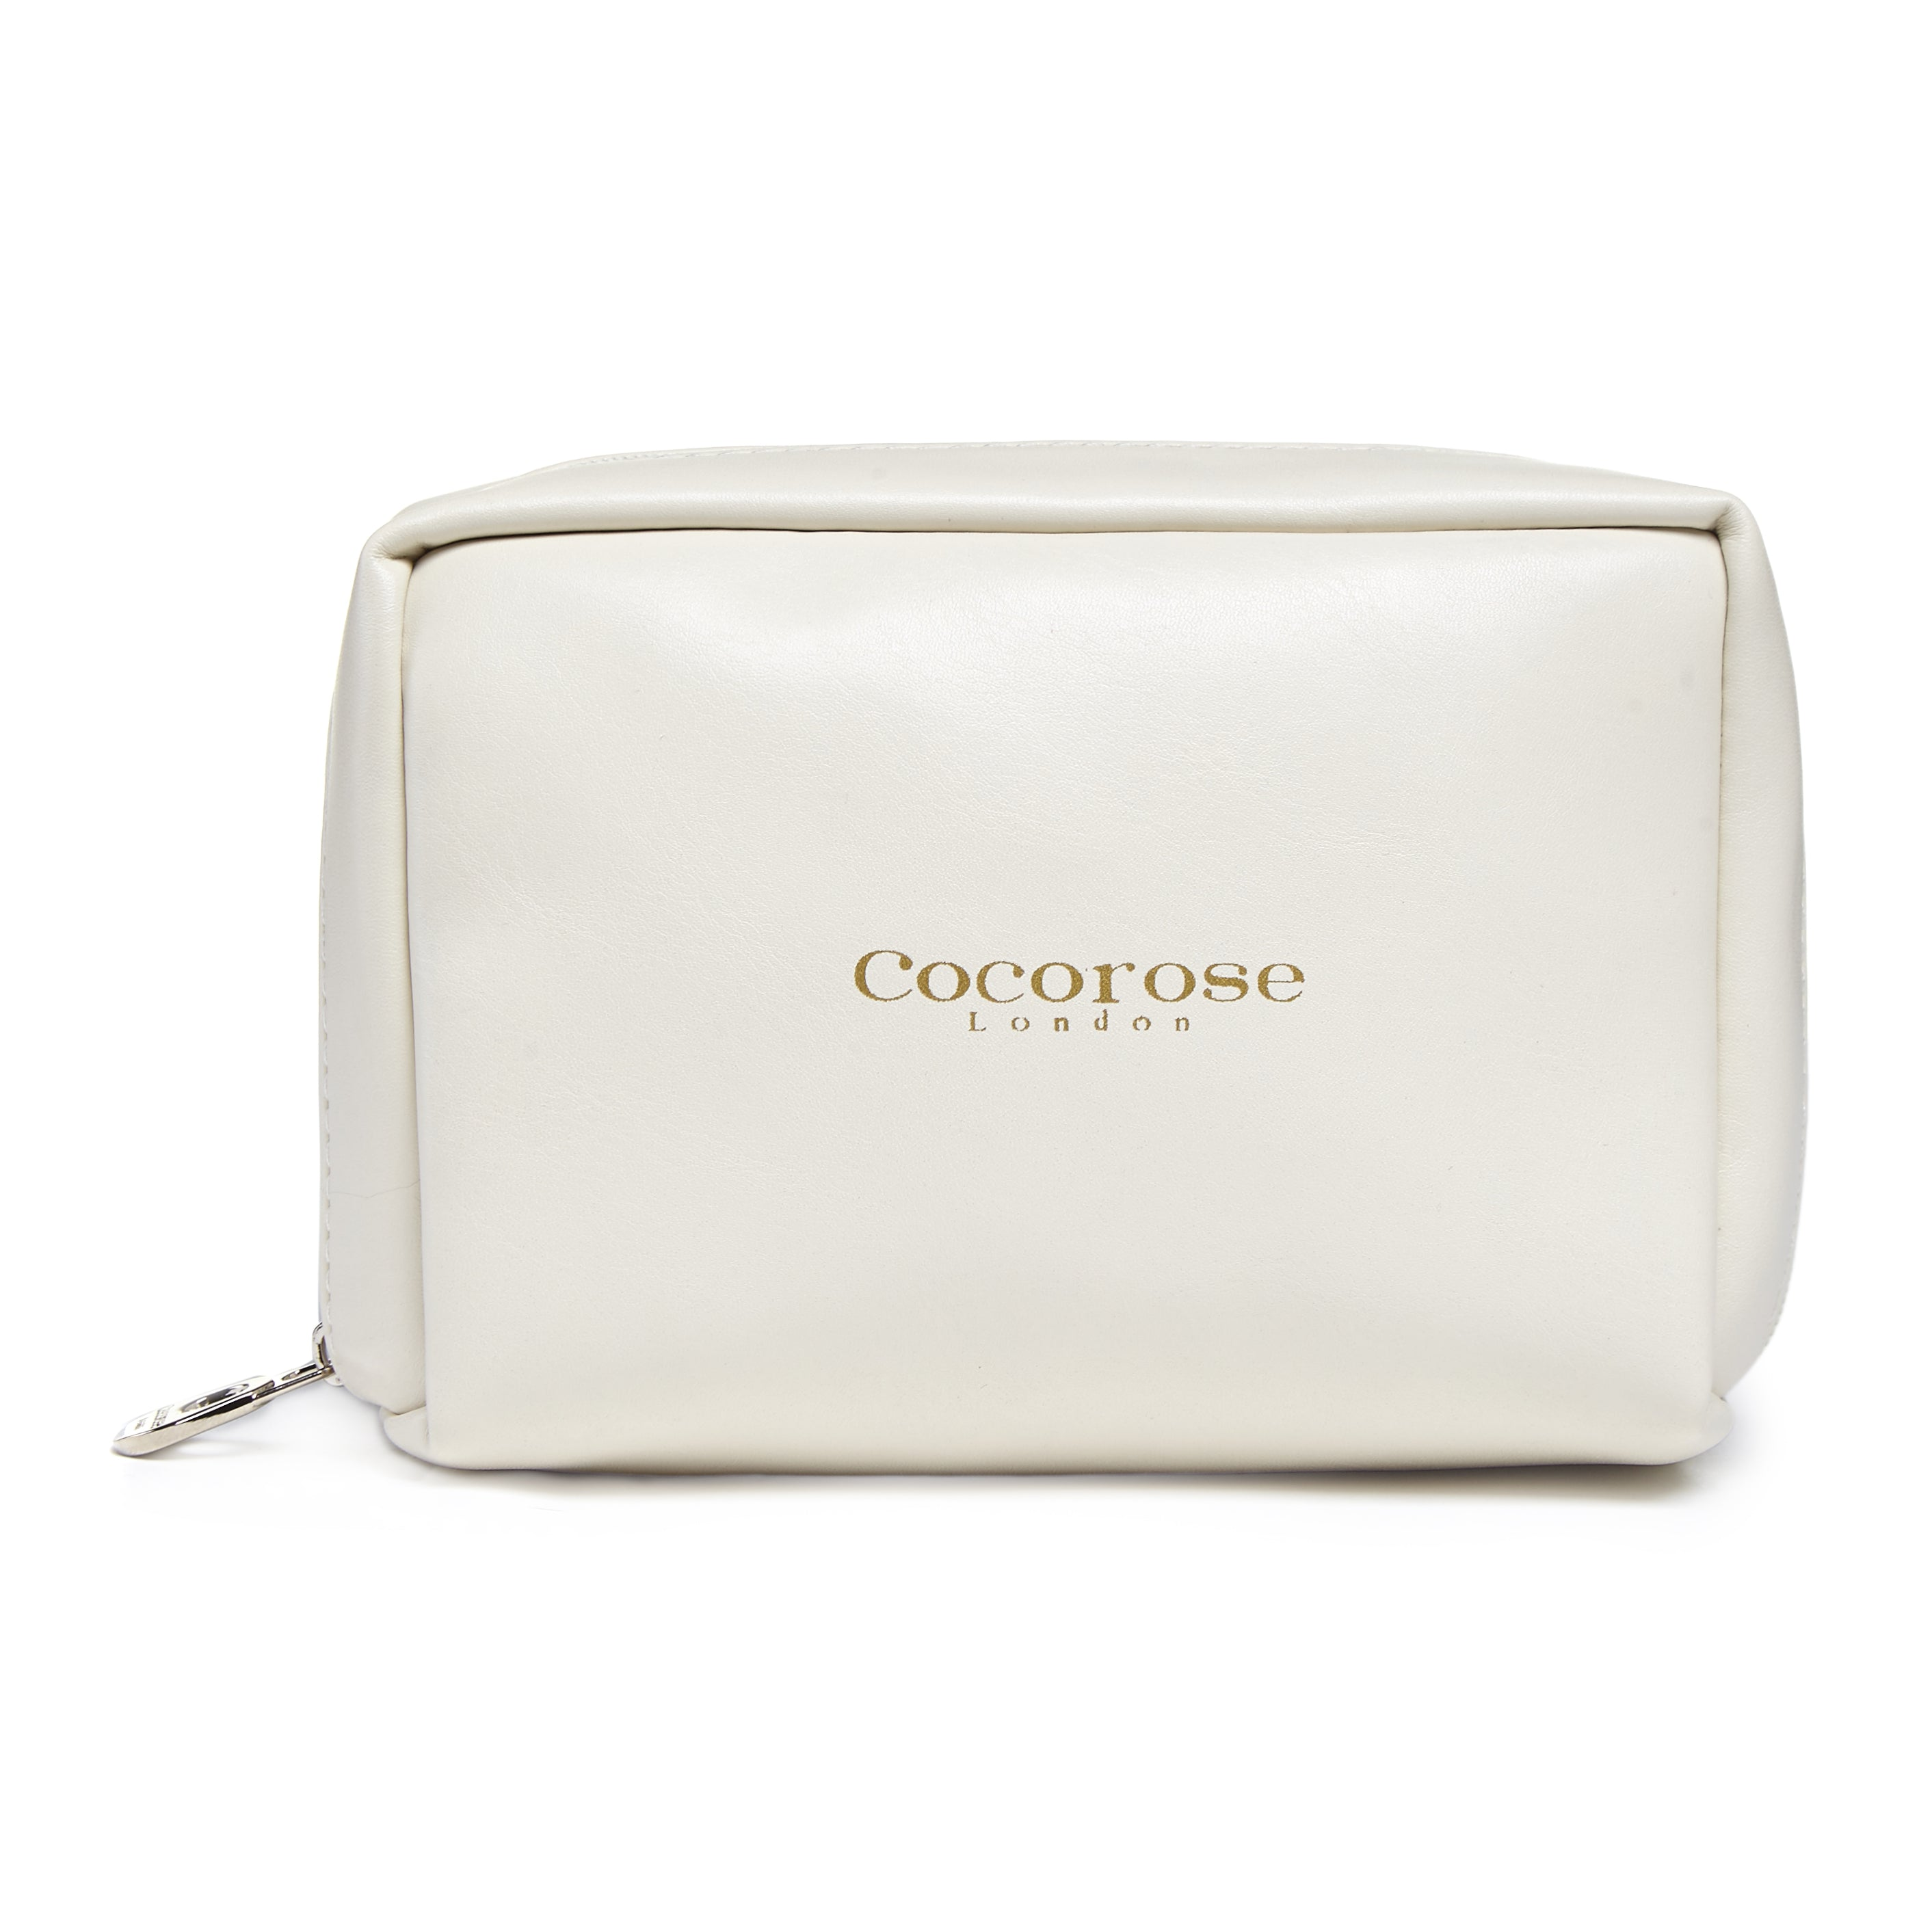 Cocorose London's Vegan Greenwich Style - Travel Purse for Ivory Foldable Shoes